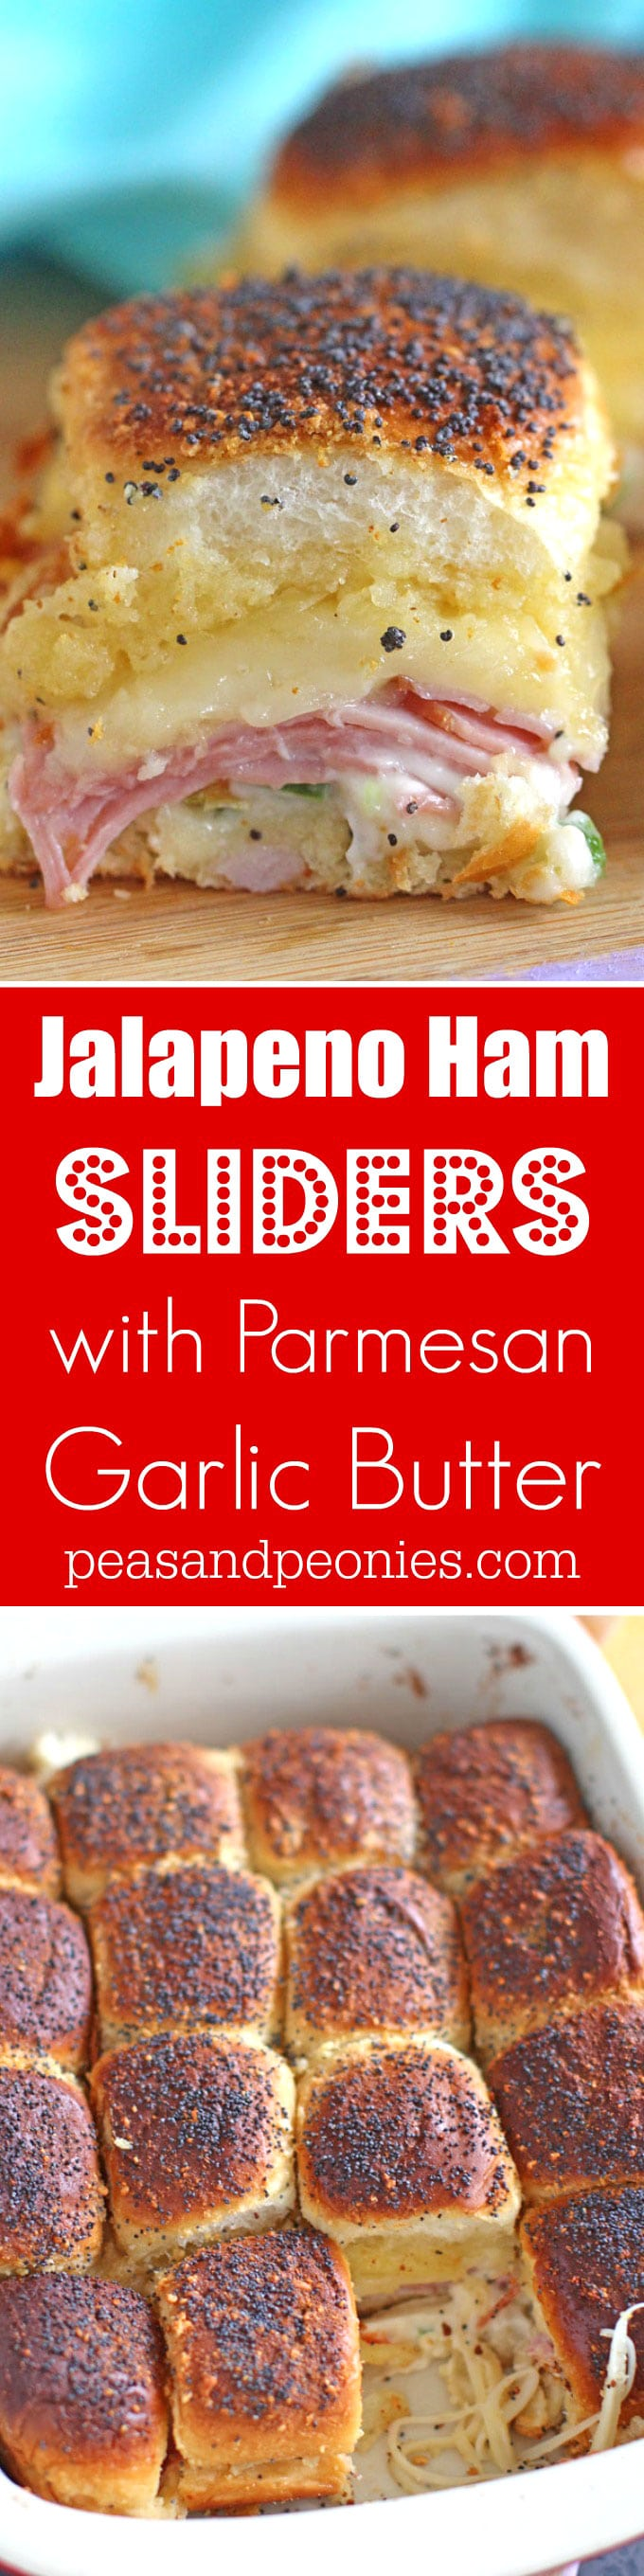 Spicy Ham Sliders are stuffed with fresh jalapeños, lots of cheese and brushed with parmesan garlic butter for the perfect golden finish.